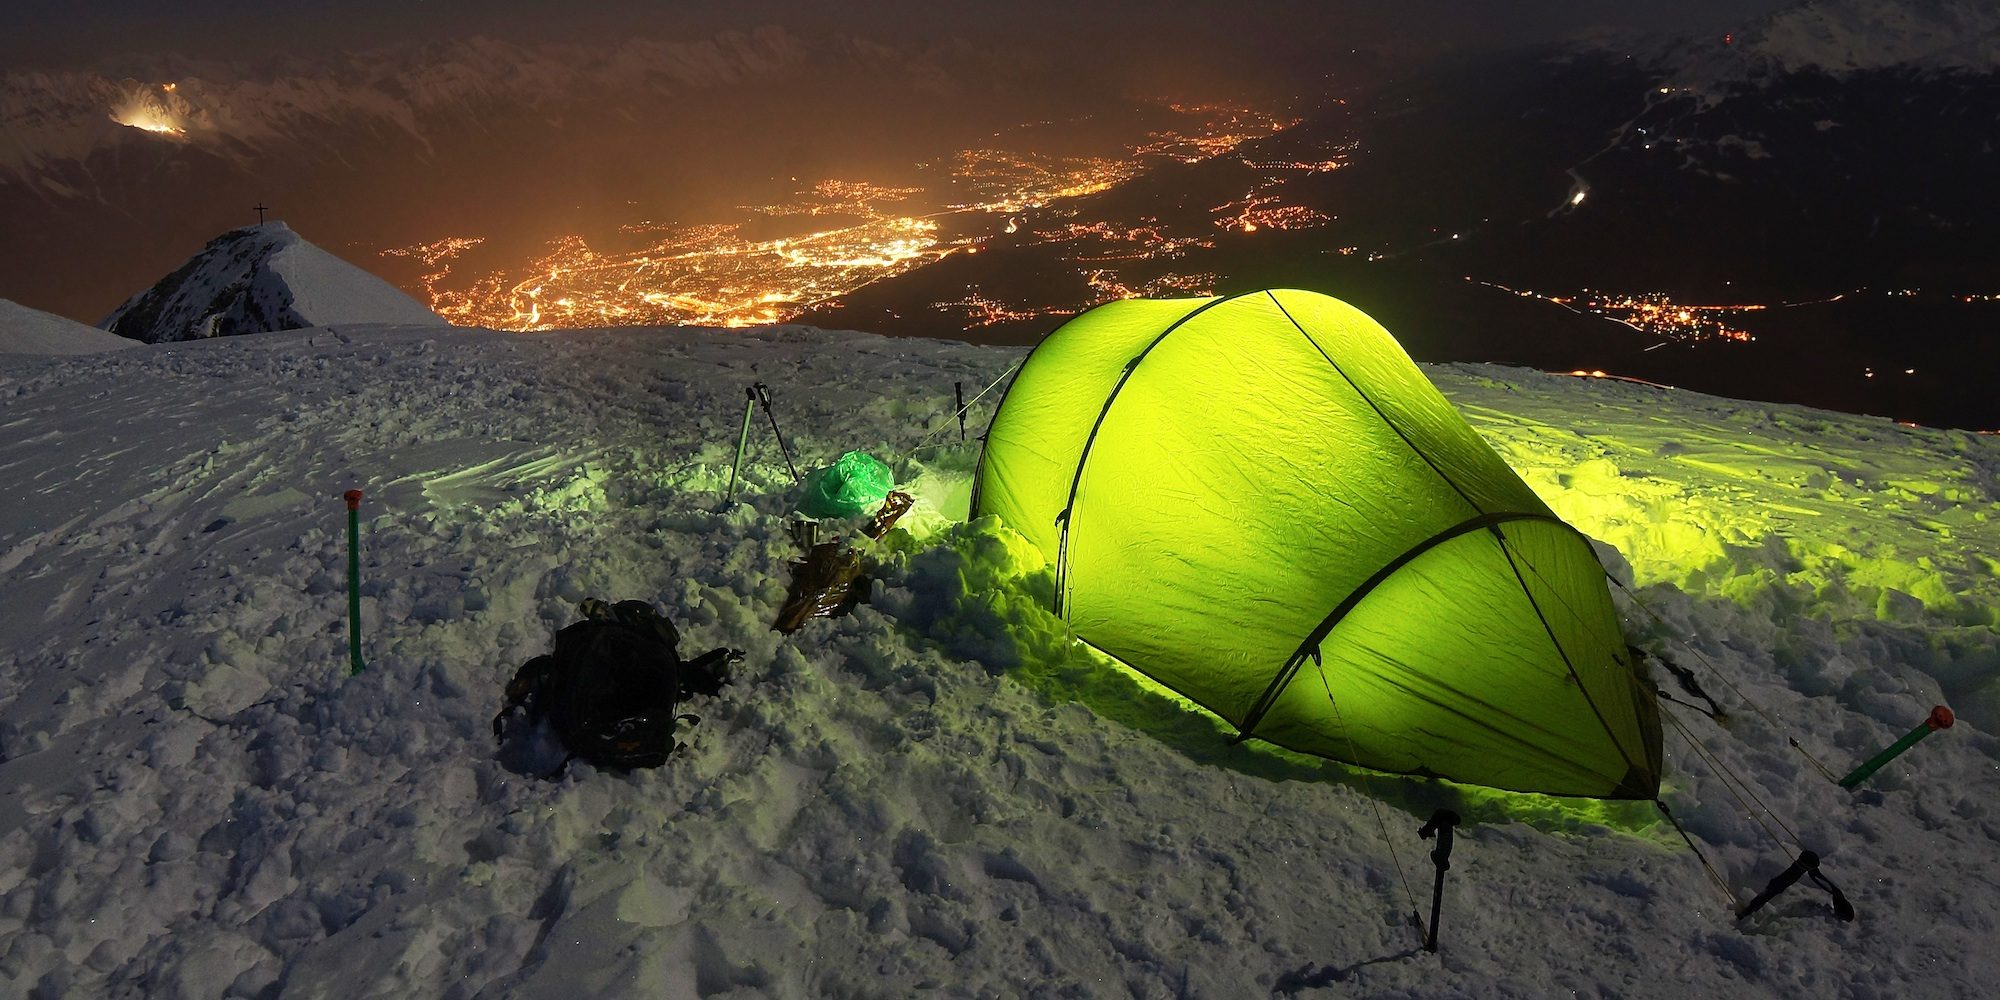 Illuminated green tent on snowy mountain at night with city lights in the background